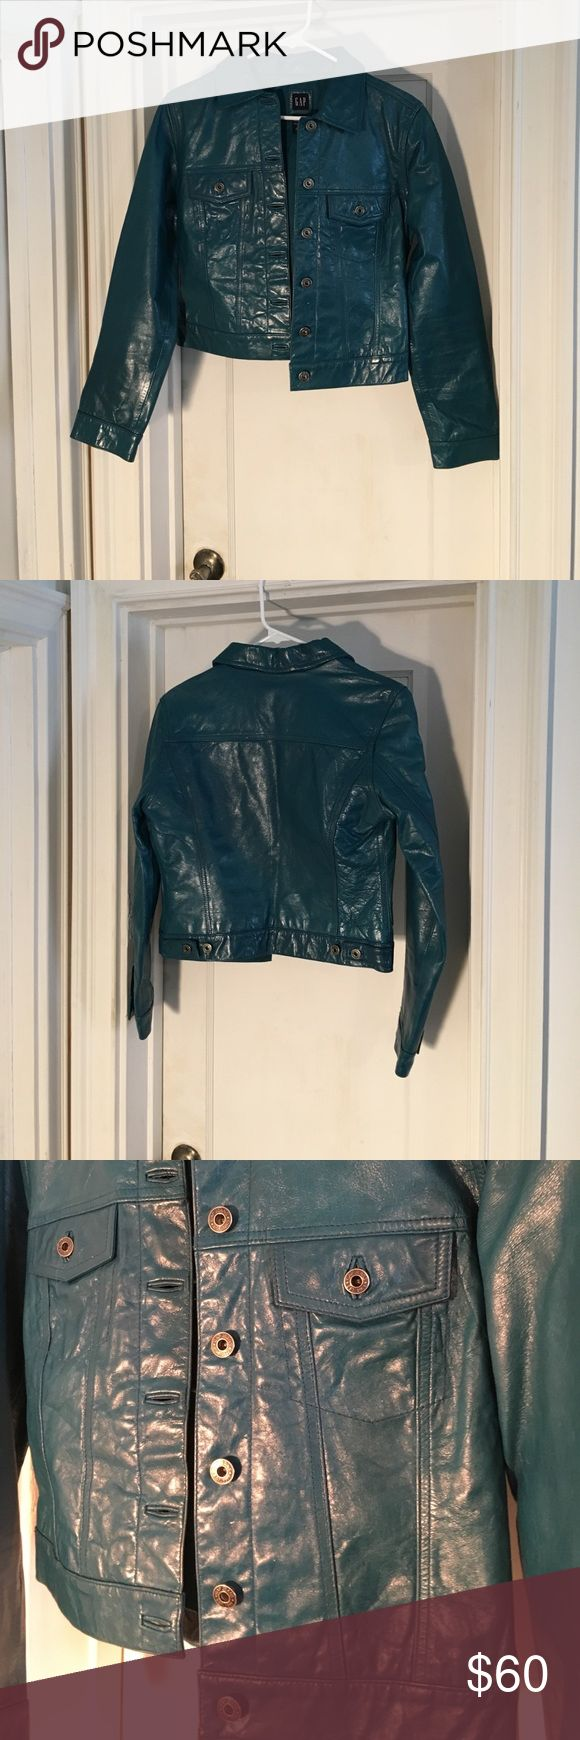 New Gap blue leather bomber jacket size S Beautiful deep blue/green bomber jacket by Gap. Never worn . Perfect new condition. . Great color! GAP Jackets & Coats Utility Jackets